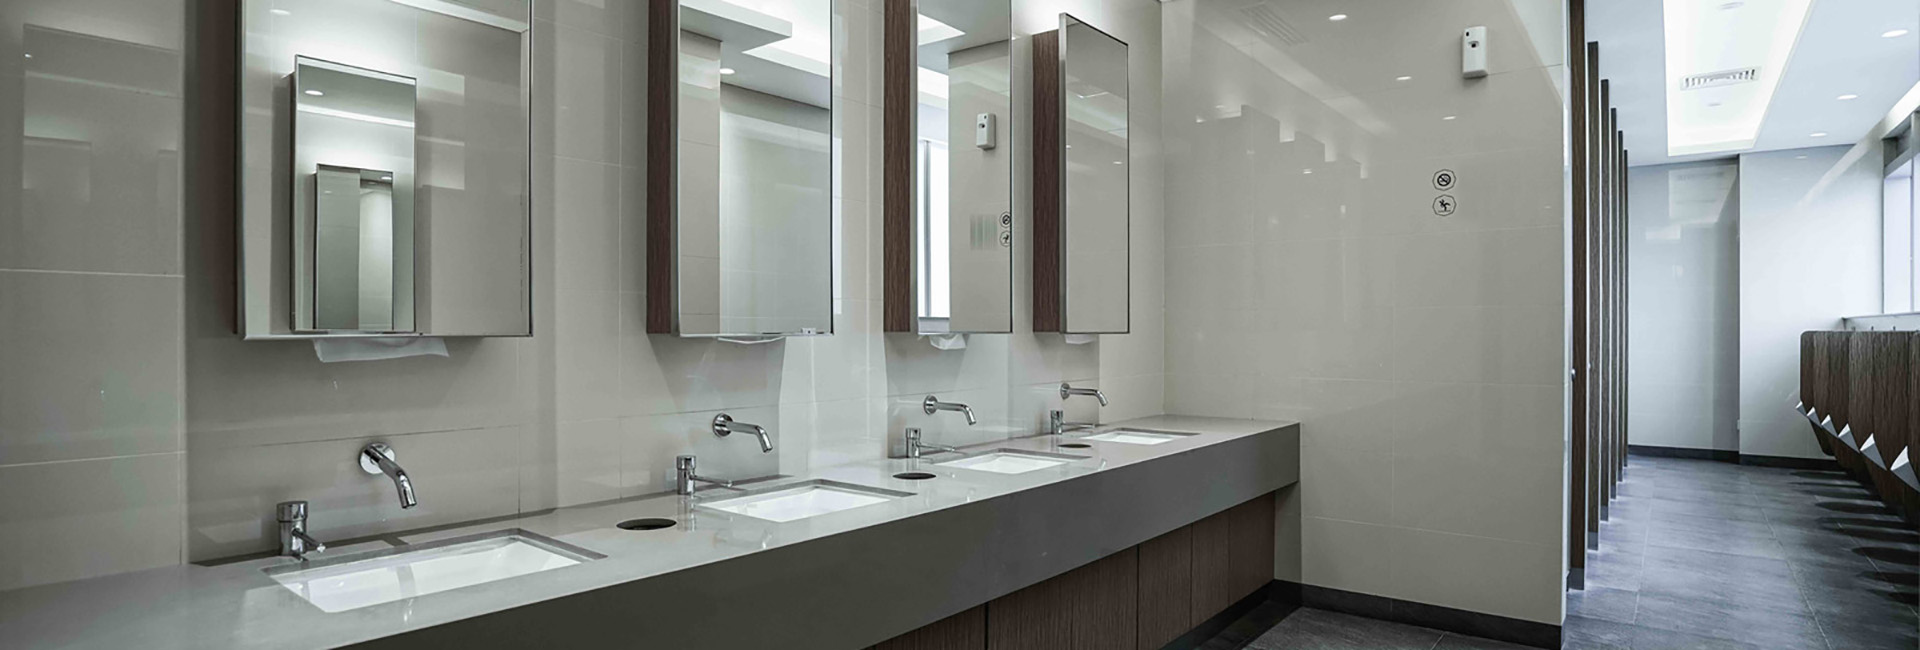 Installation and Aftercare - Commercial Secor Washroom